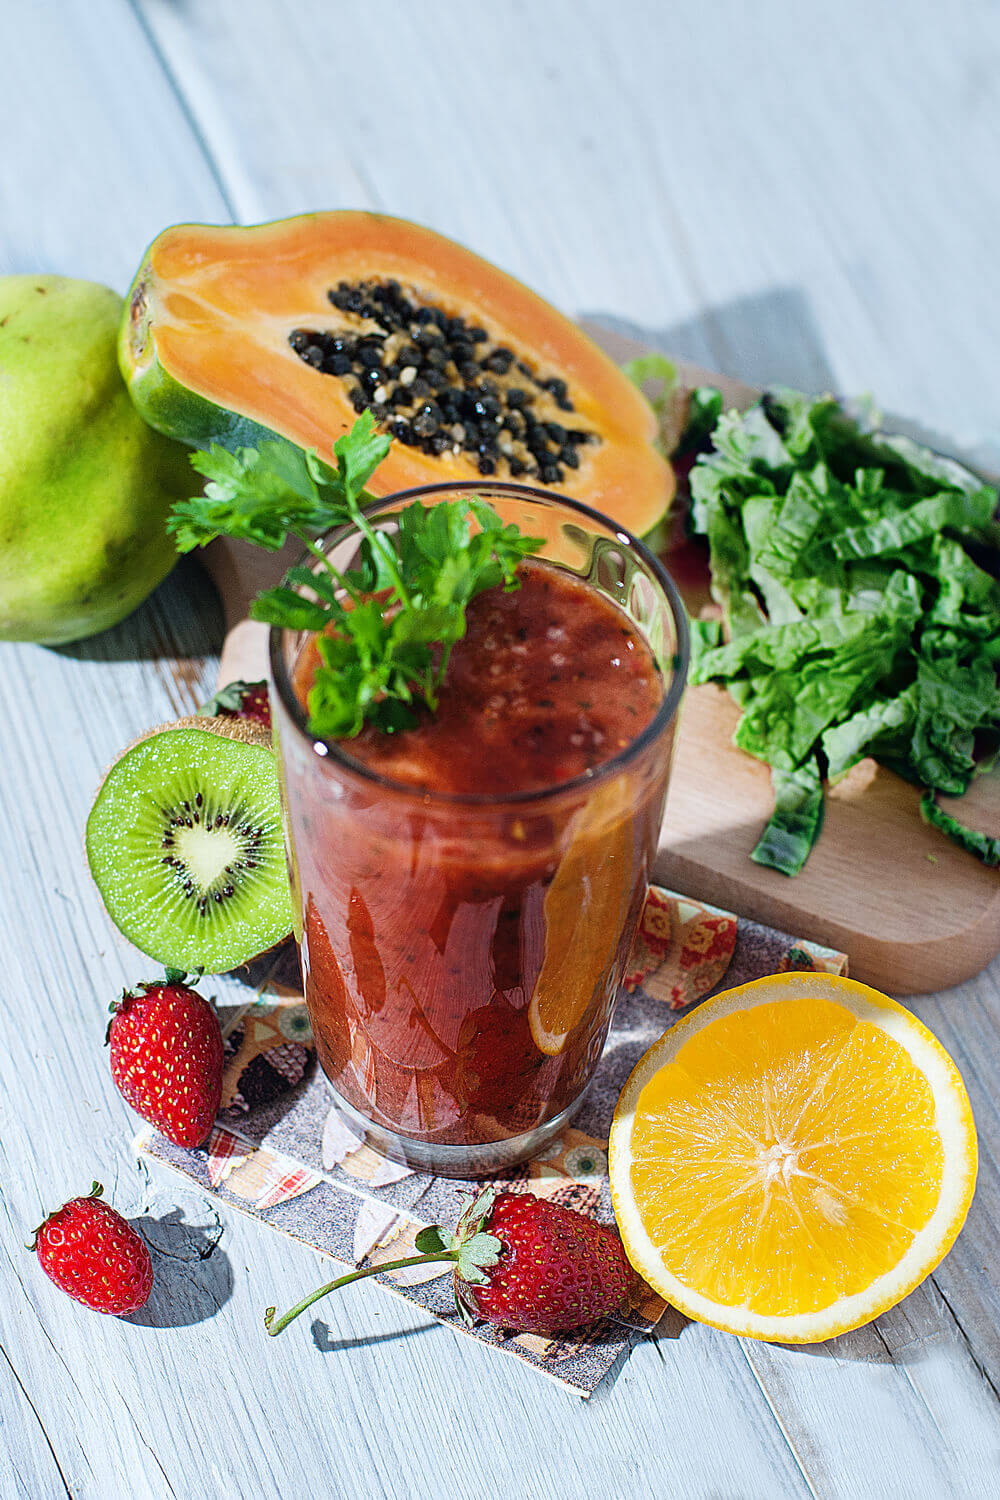 Papaya, kiwifruit, guava, water, orange juice, kale, strawberries and parsley smoothie